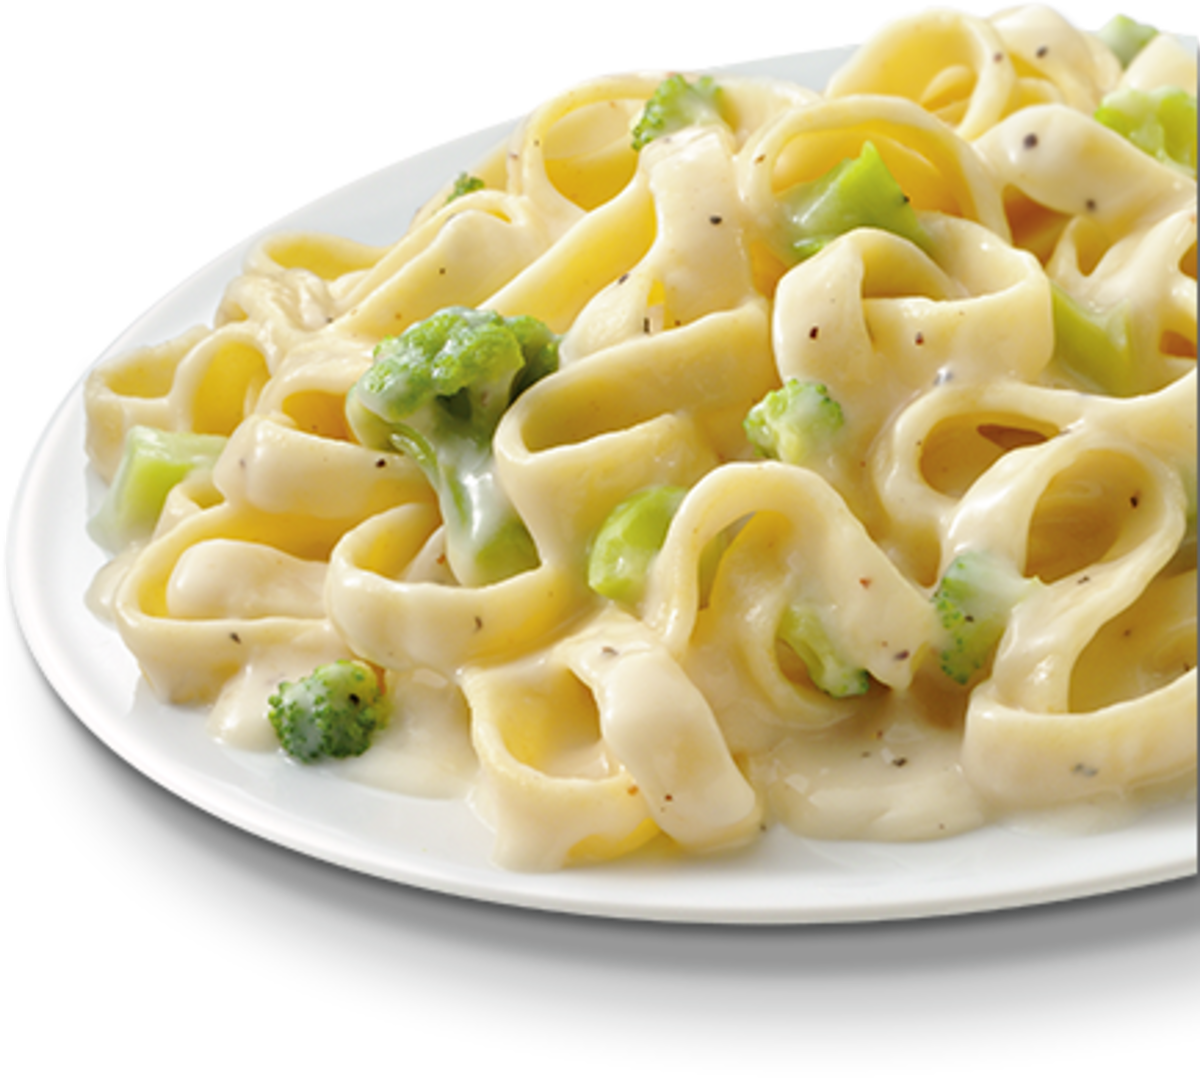 This just a great way for a person who dose not eat meat or seafood to enjoy some great fettuccine alfredo